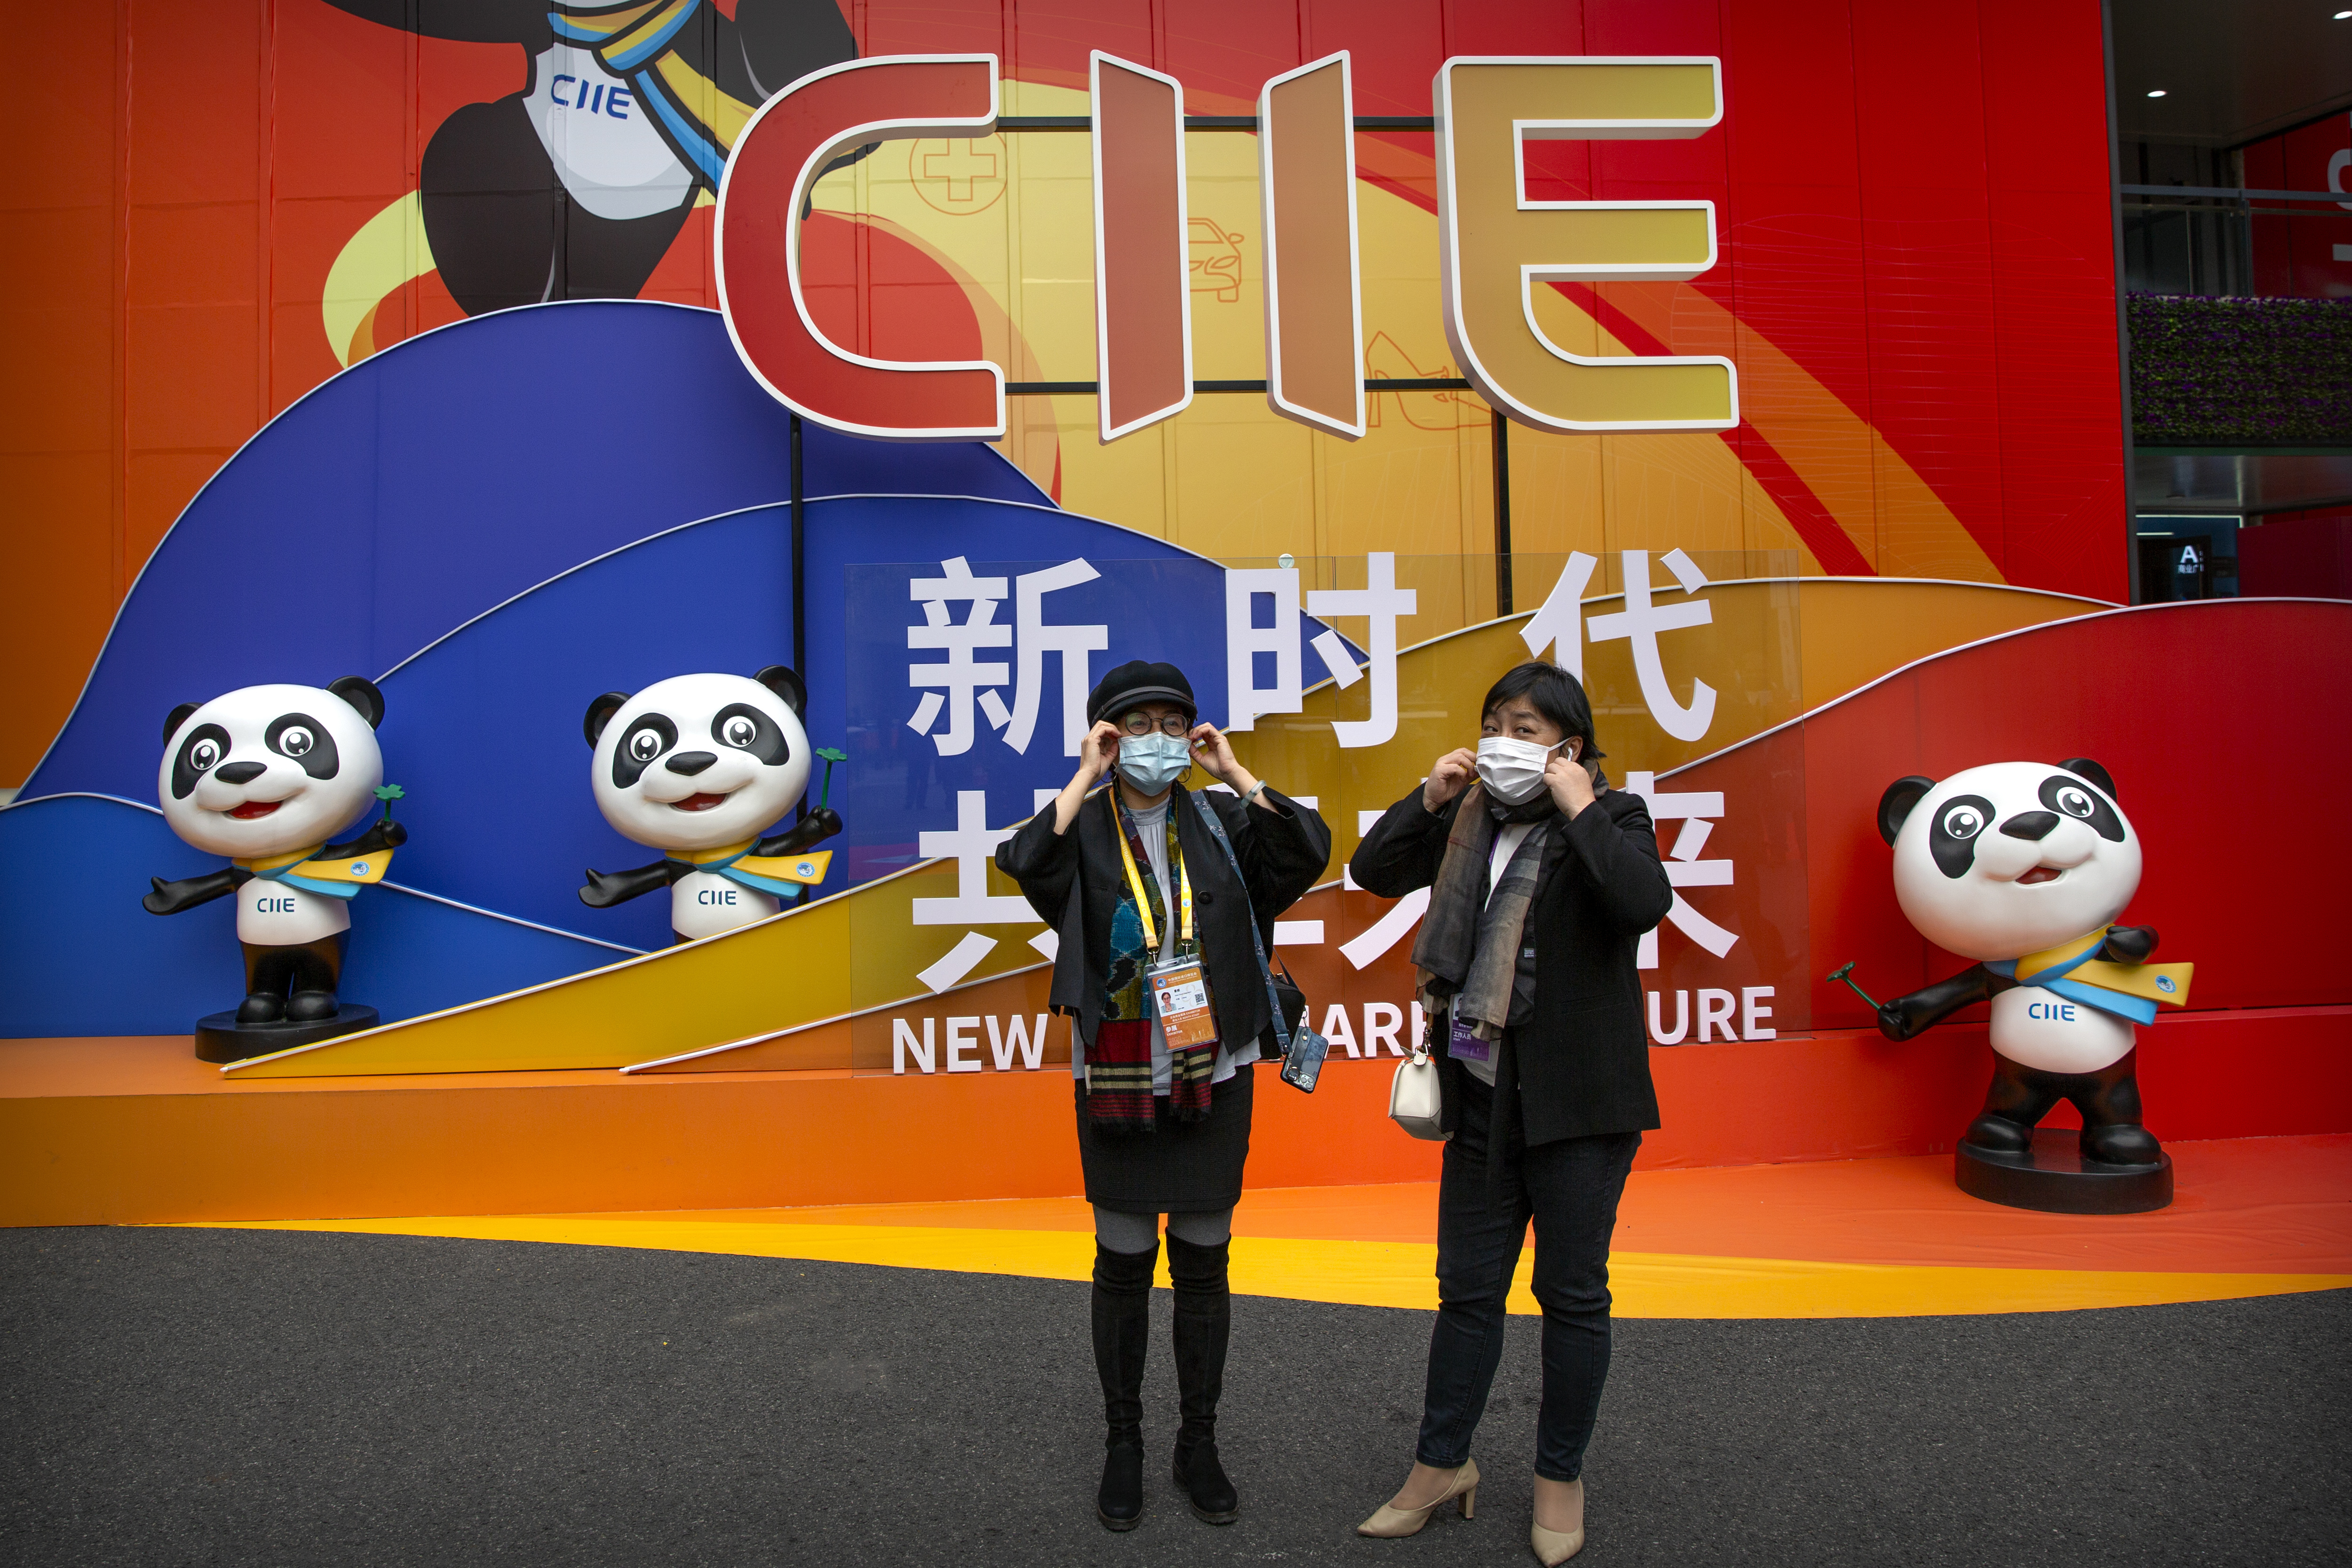 Women adjust their face masks as they stand in front of a display at the China International Import Expo in Shanghai, Thursday, Nov. 5, 2020. The expo, one of China's largest annual trade fairs, kicked off on Thursday as the ongoing COVID-19 pandemic has largely been controlled within China. (AP Photo/Mark Schiefelbein)